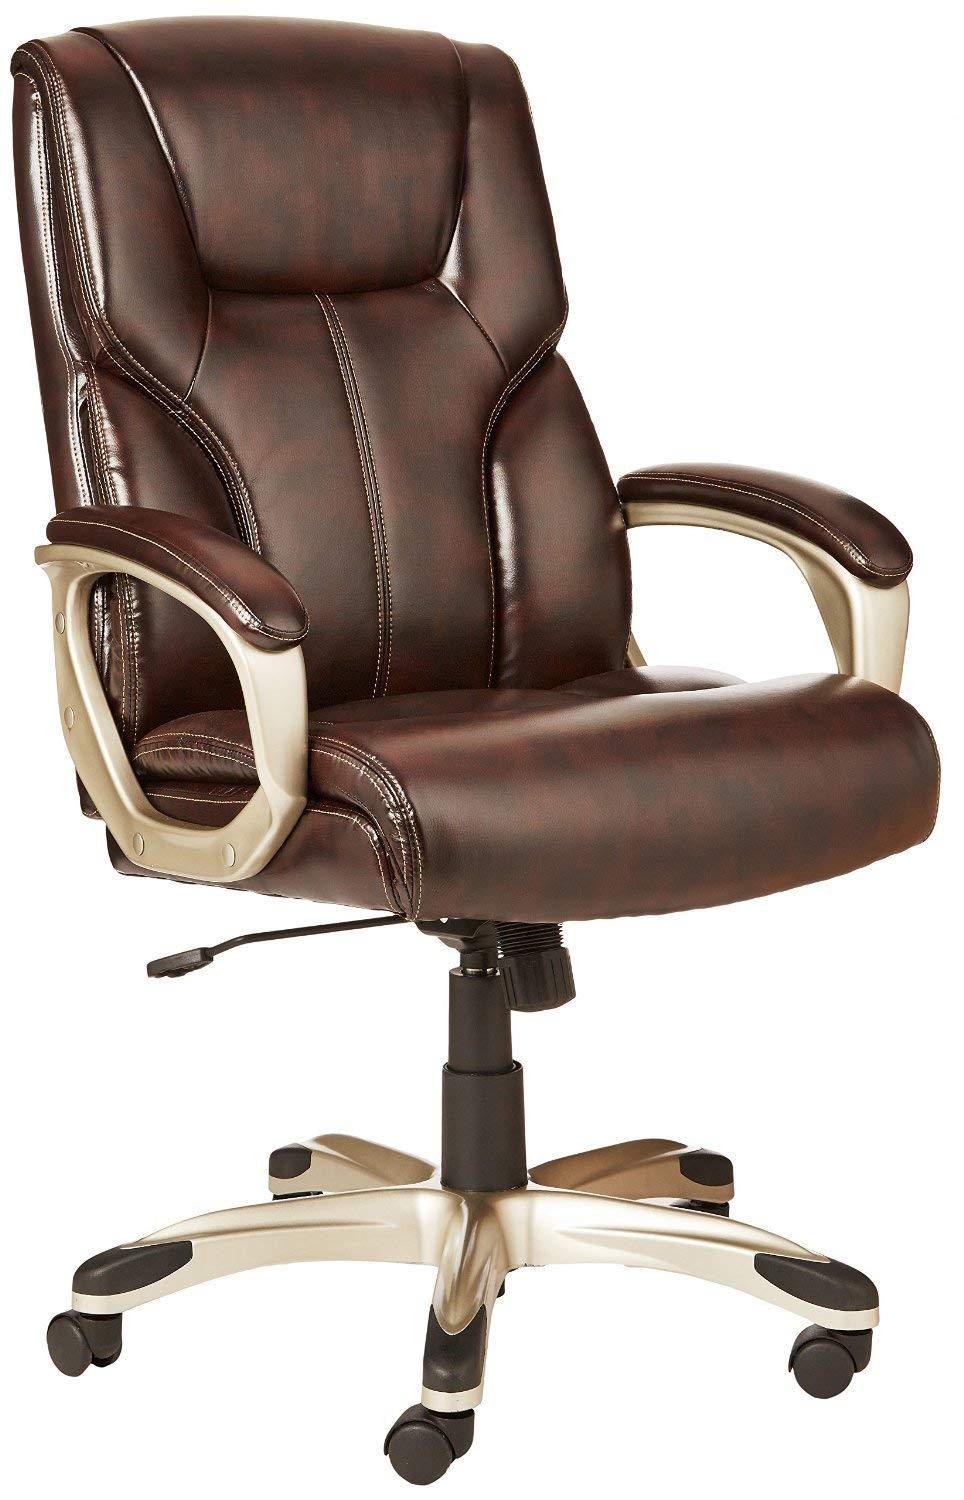 Amazonbasics High Back Executive Chair Brown Amazon In Home Kitchen